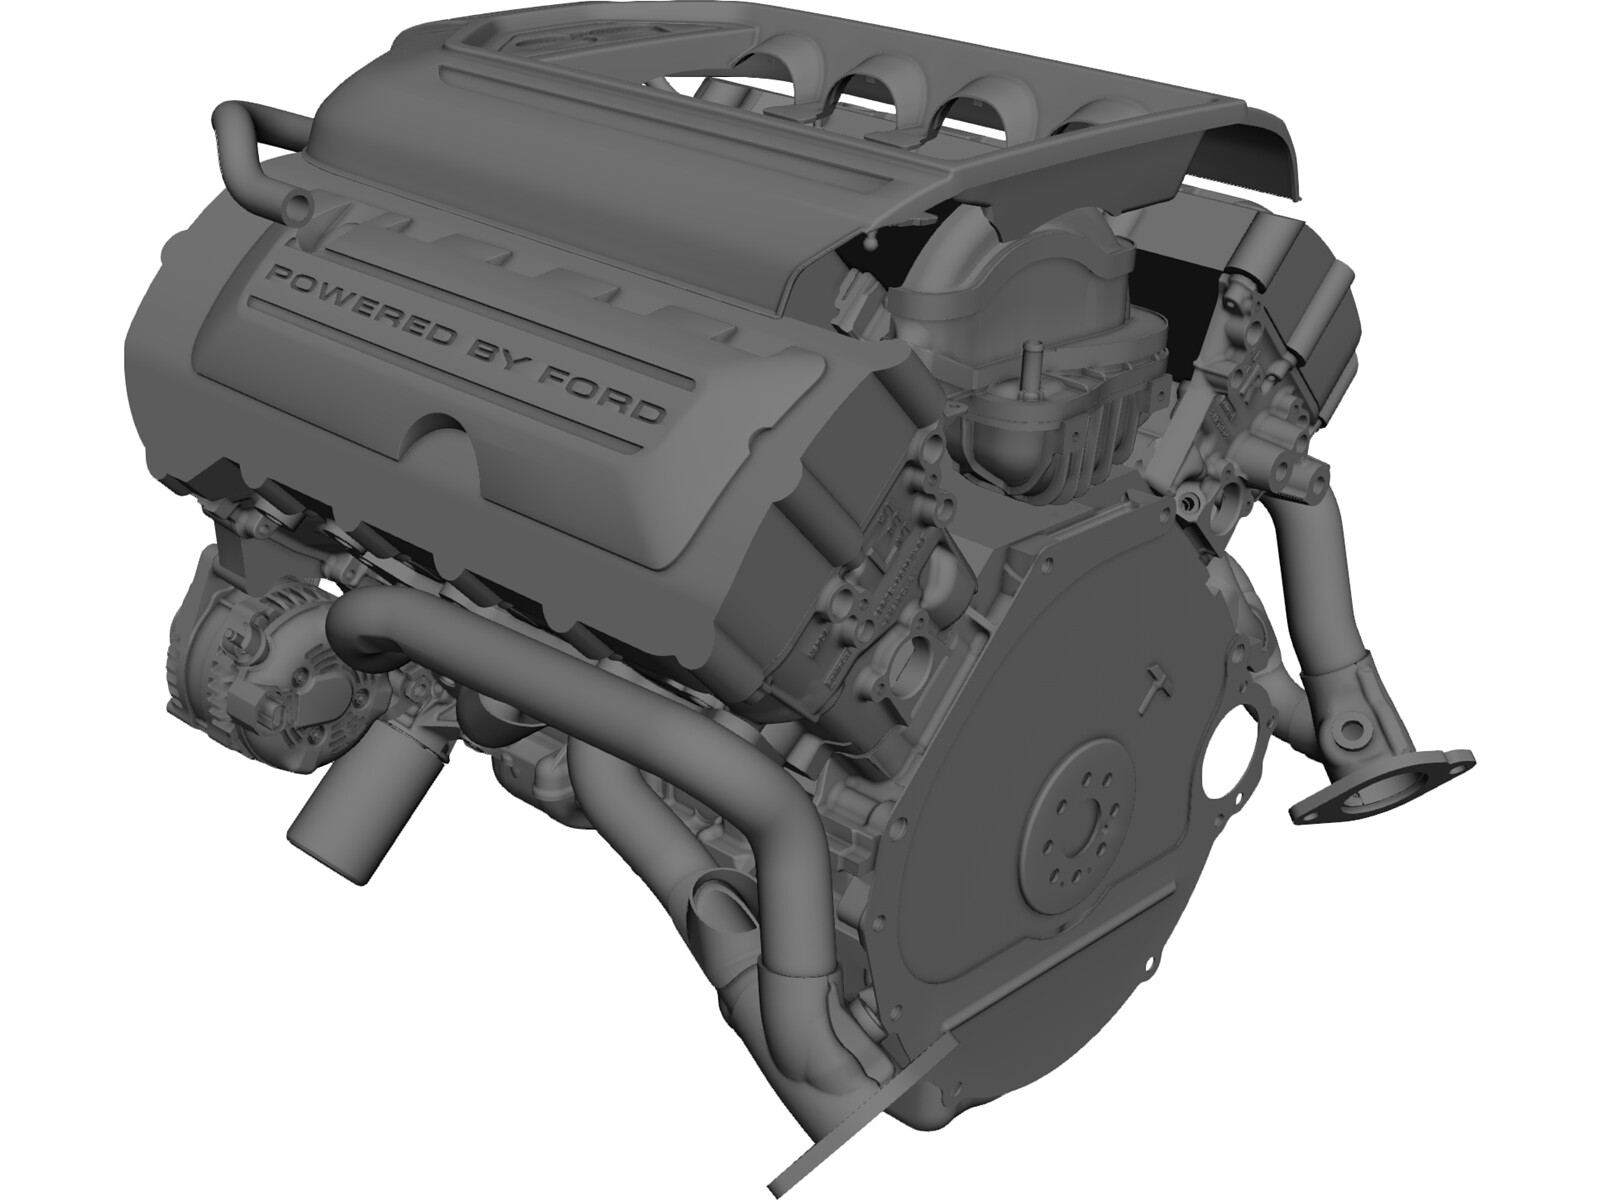 Ford 5.0 Coyote Engine 3D CAD Model